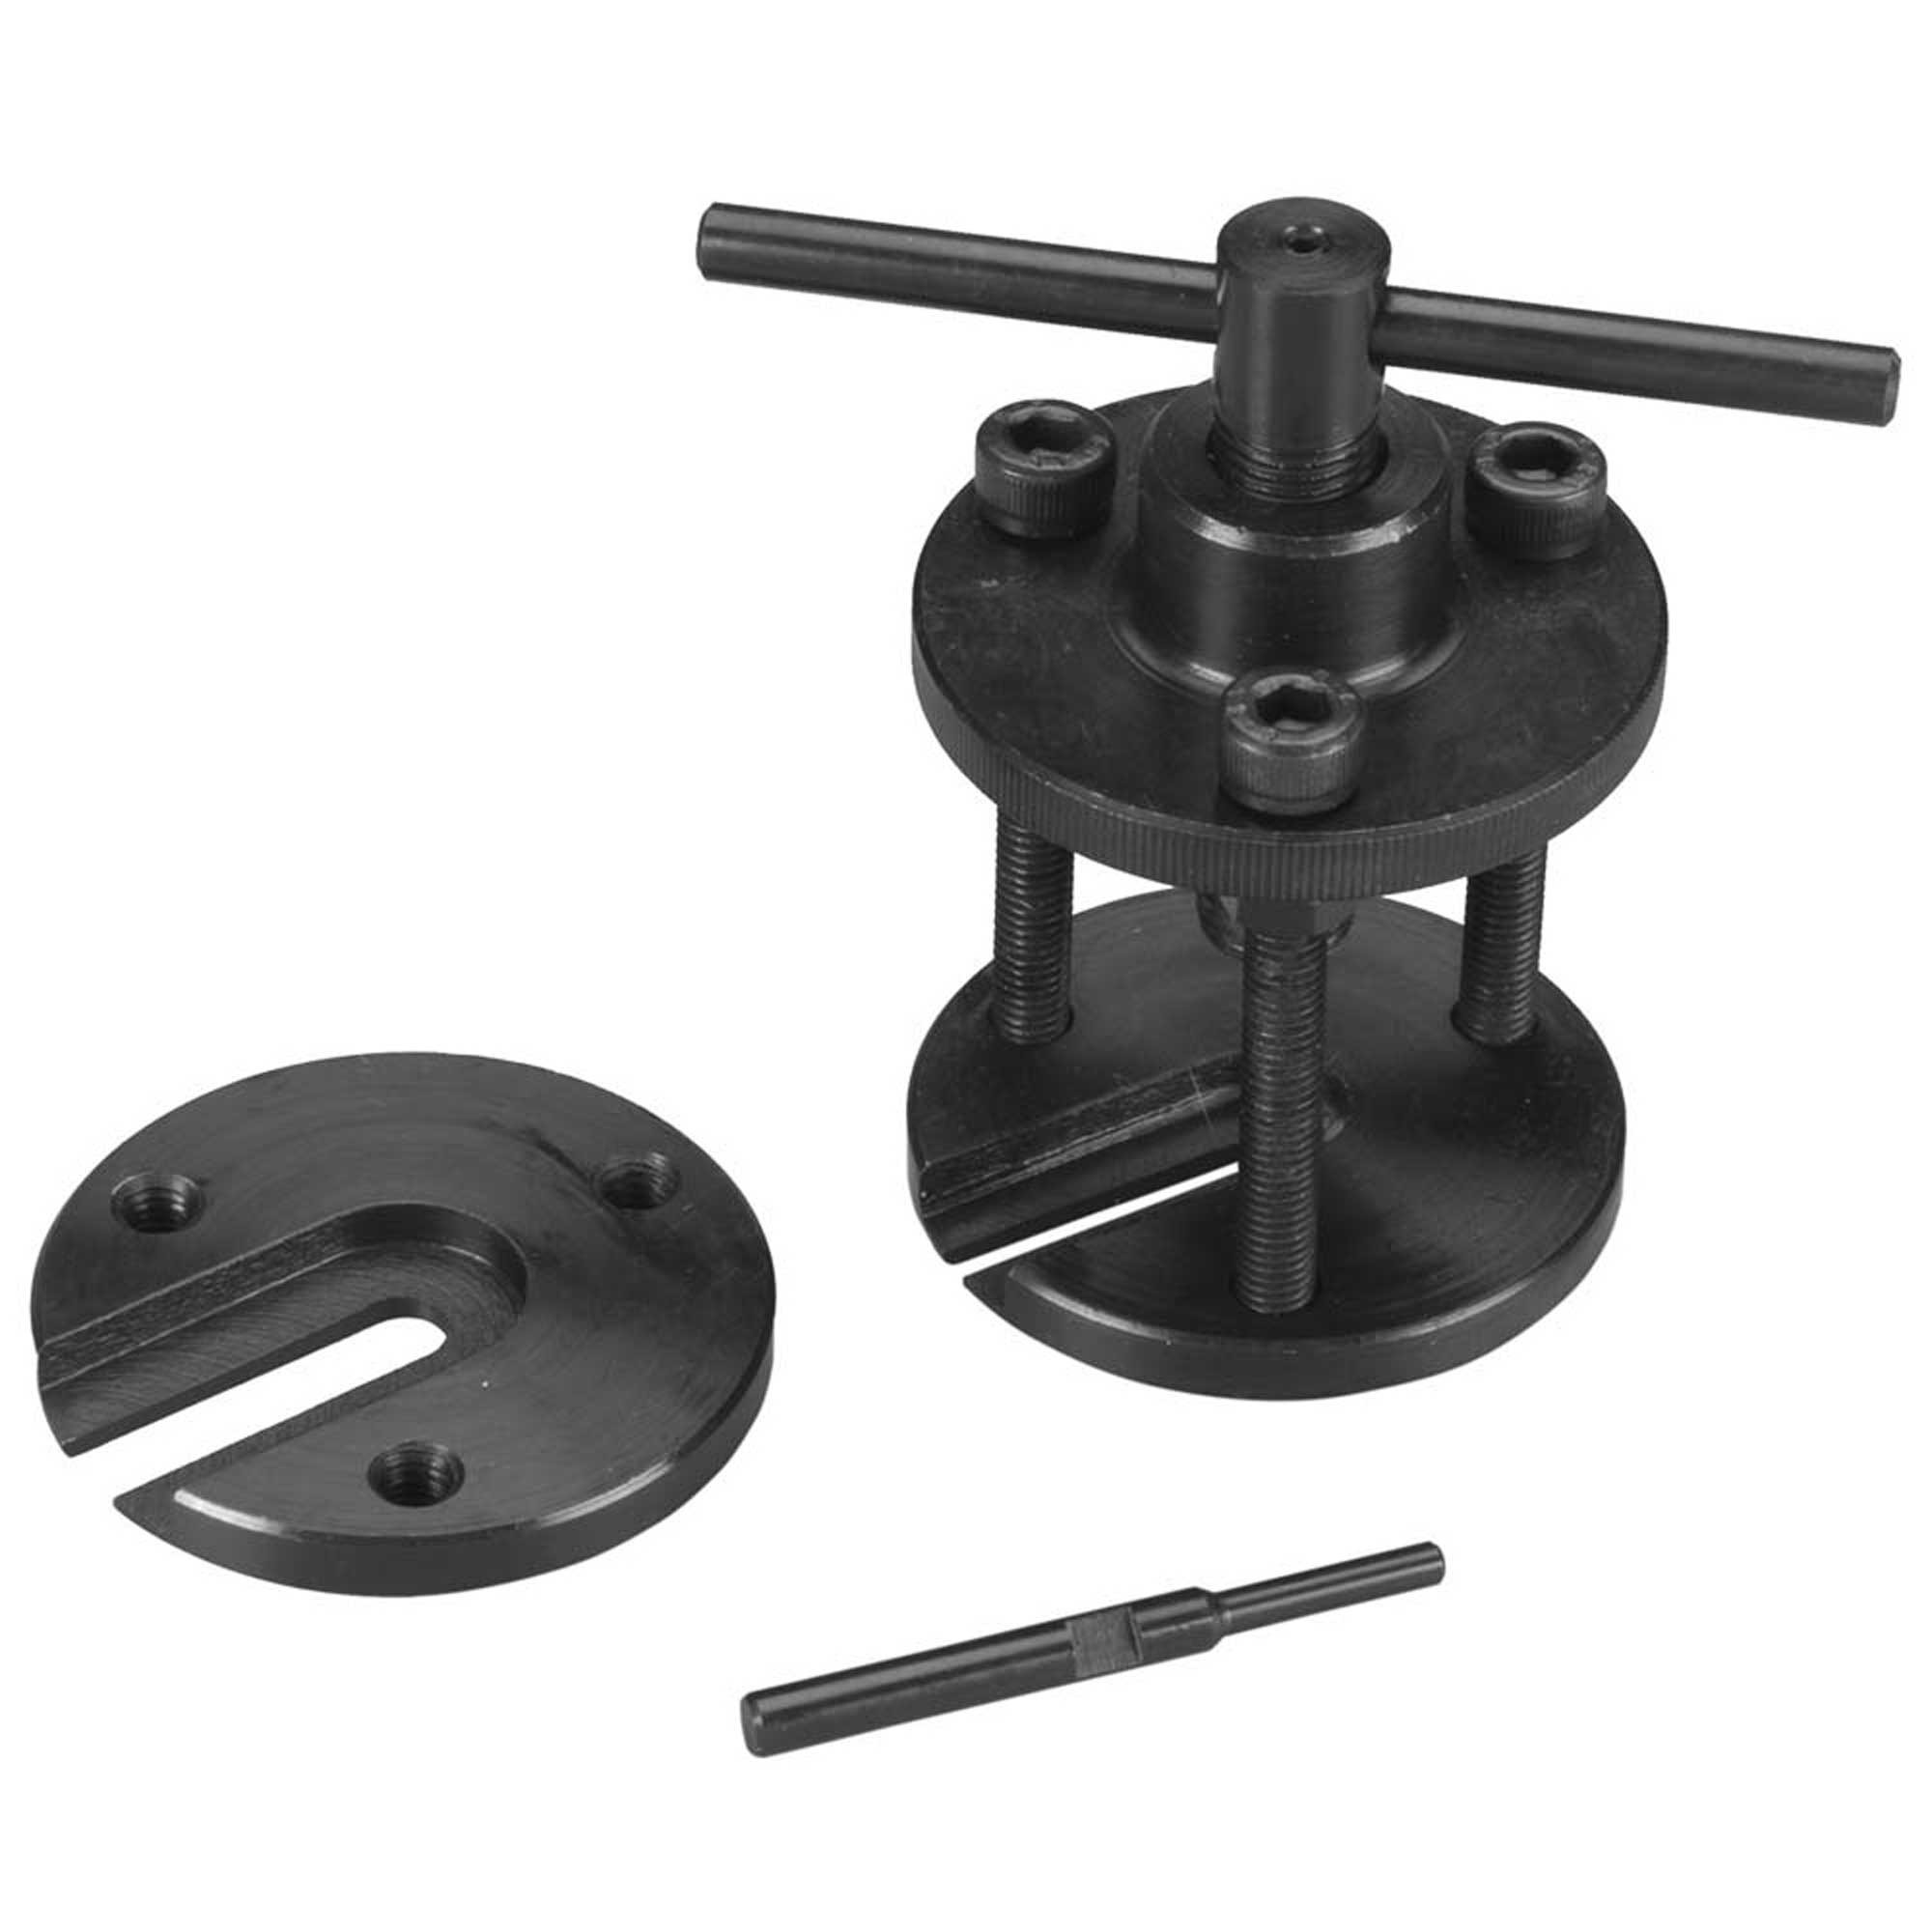 Tbest Pinion Gear Puller Motor Gear Remover Aluminium Alloy Gear Removal Hand Tool for RC Car